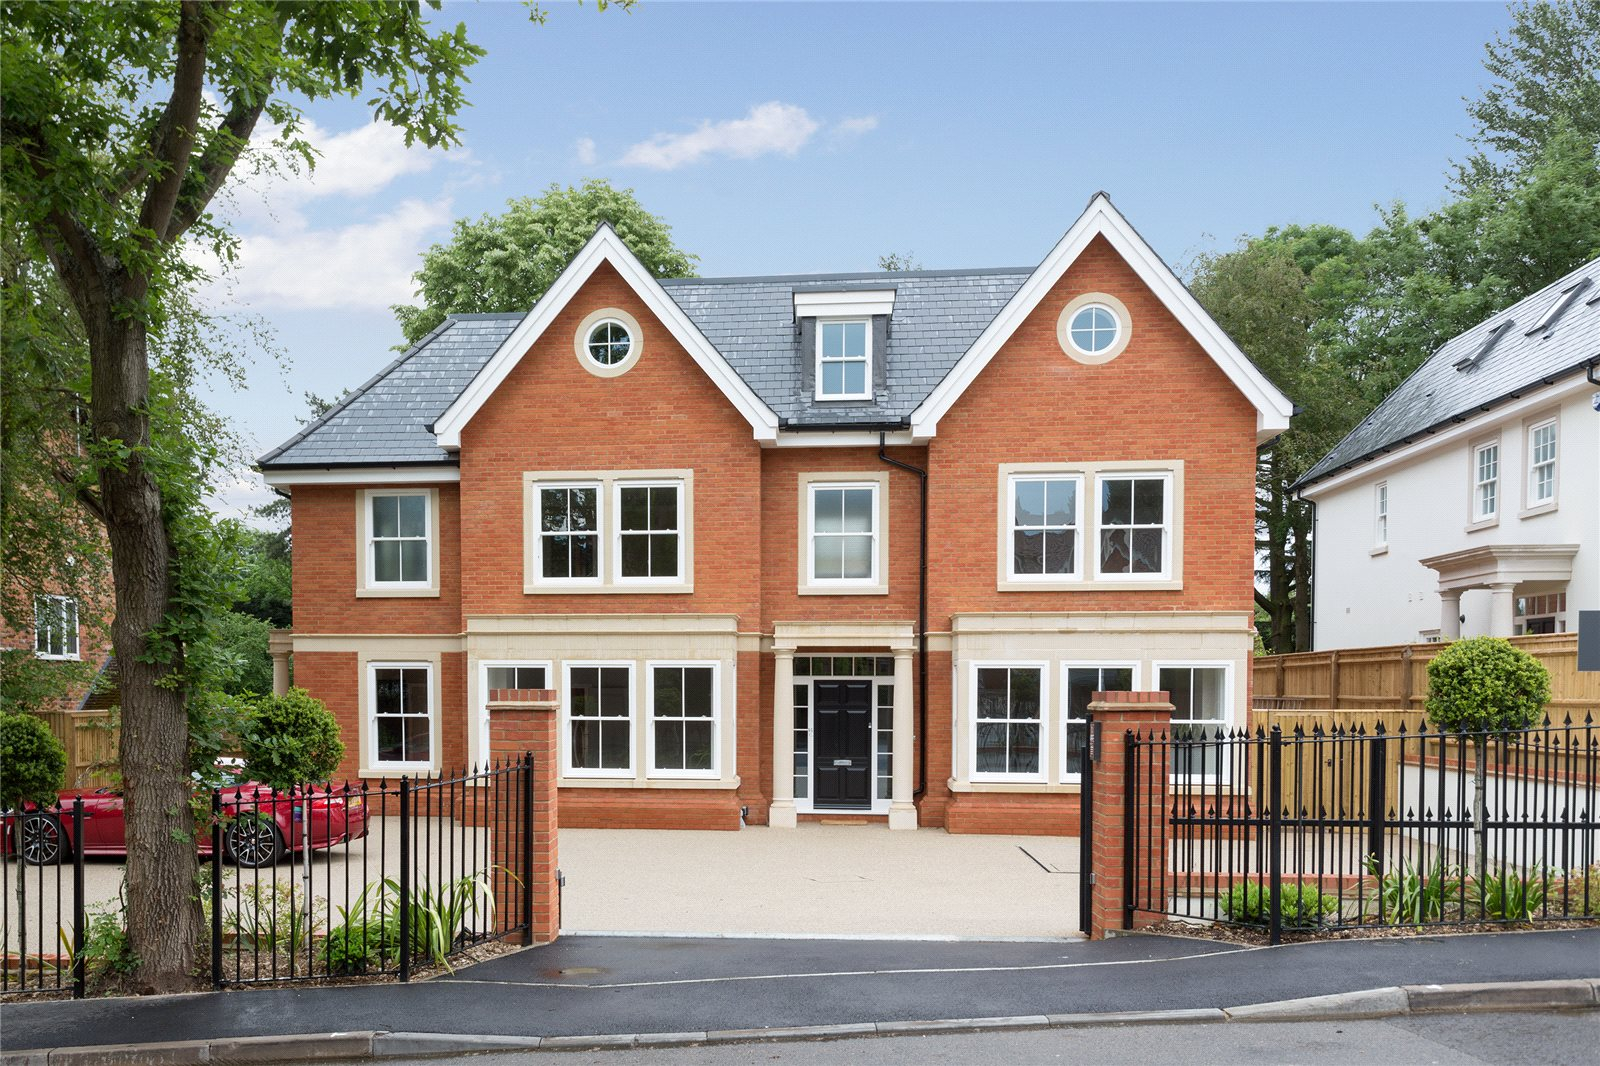 独户住宅 为 销售 在 Refined II, South Park Drive, Gerrards Cross, Buckinghamshire, SL9 Gerrards Cross, 英格兰